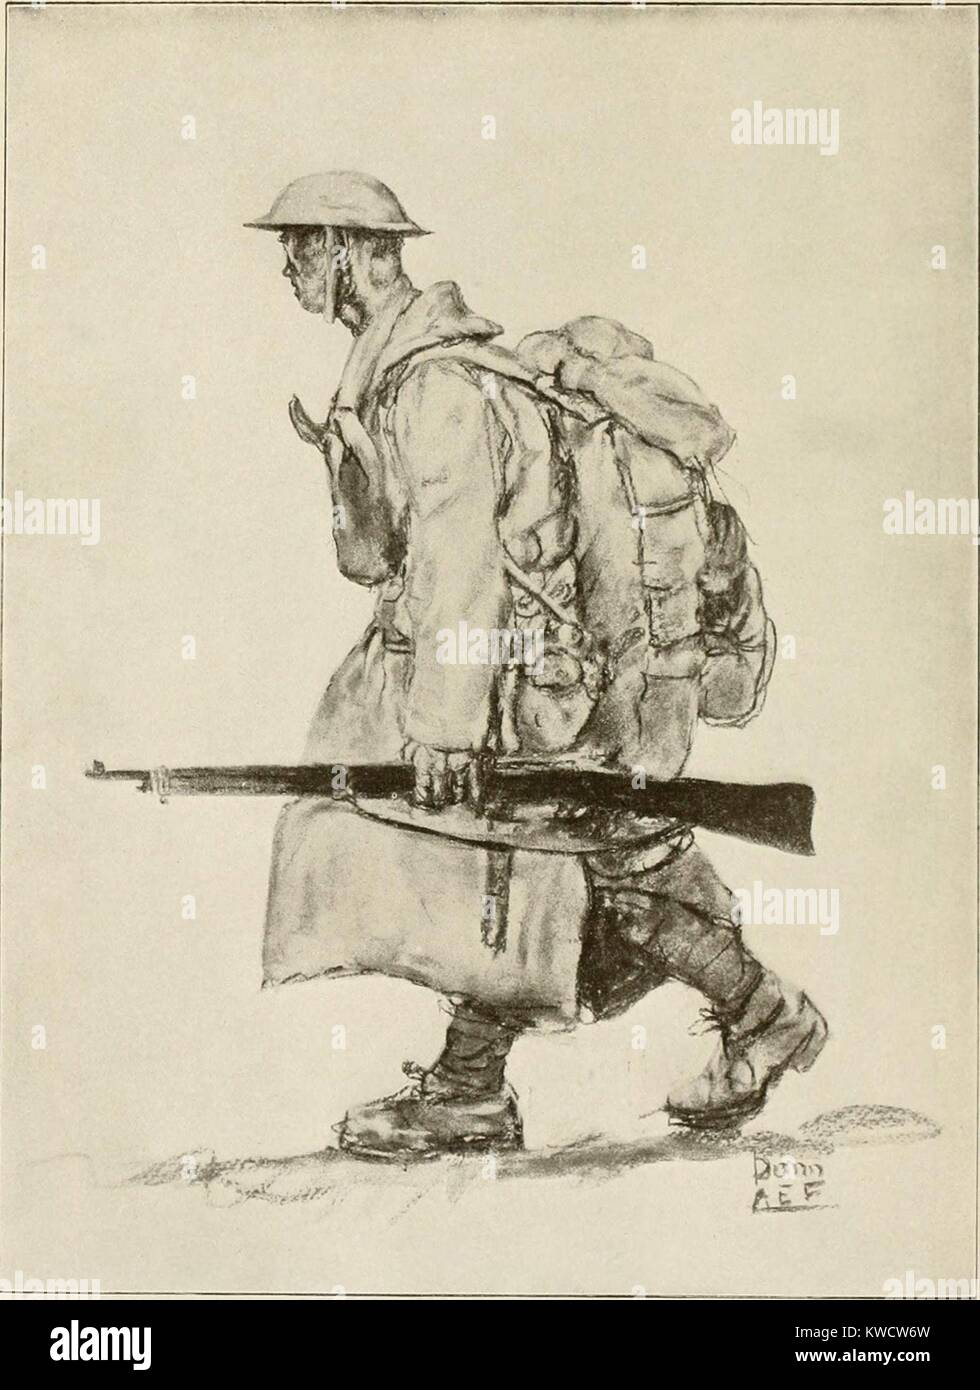 World War 1. United States Army engineer when fully equipped. Ca. 1917. (BSLOC_2013_1_193) - Stock Image